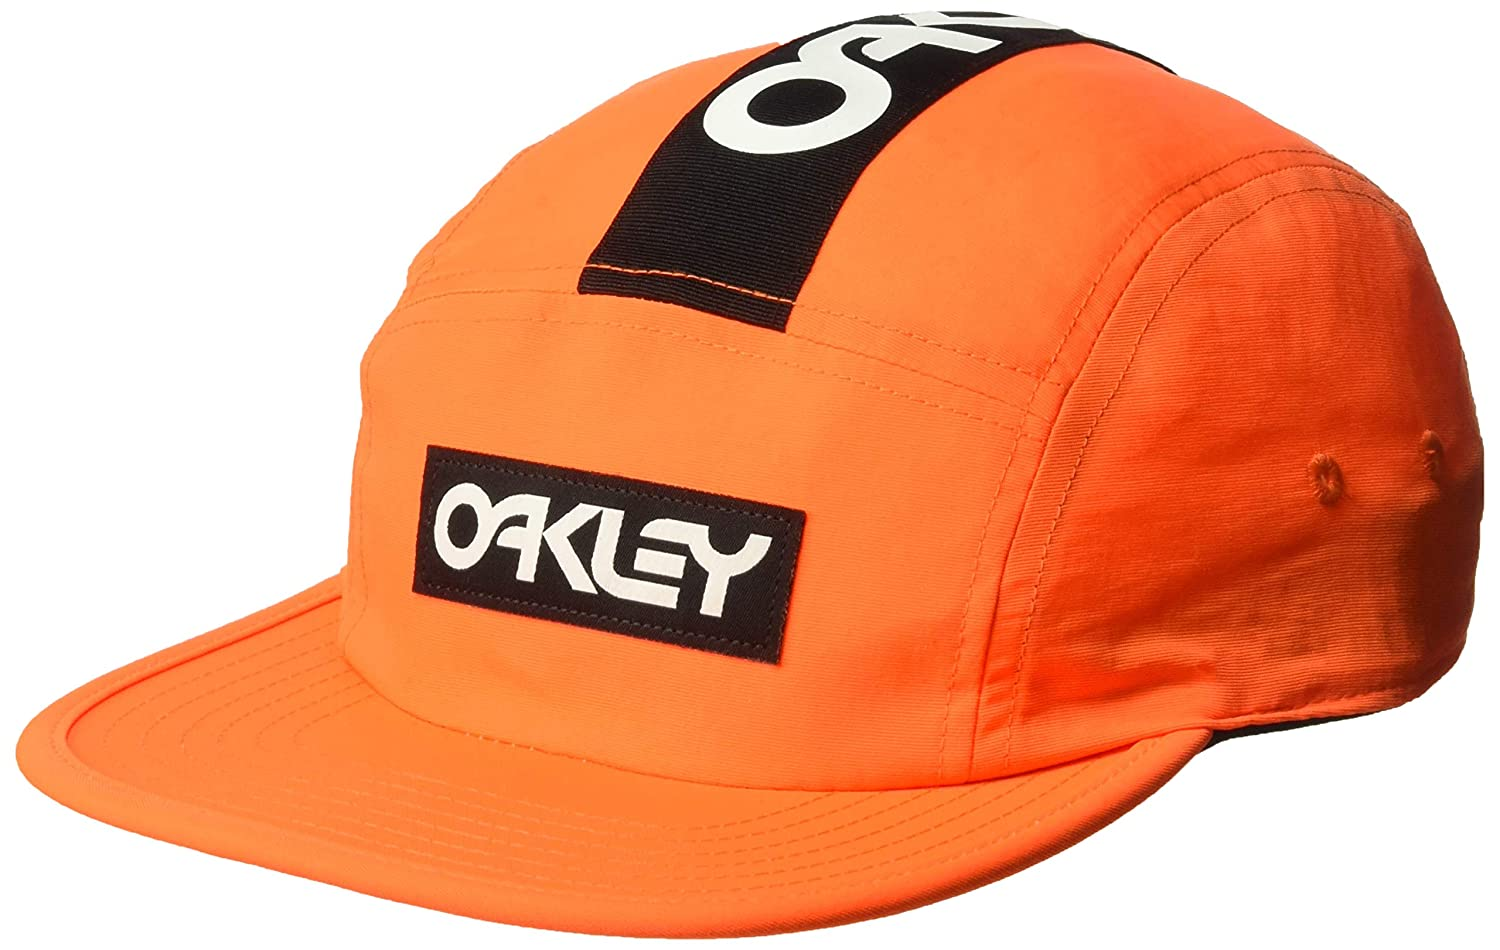 Oakley Ajuste Ajustable Sombreros Neon Orange FS mowhawk Hat ...